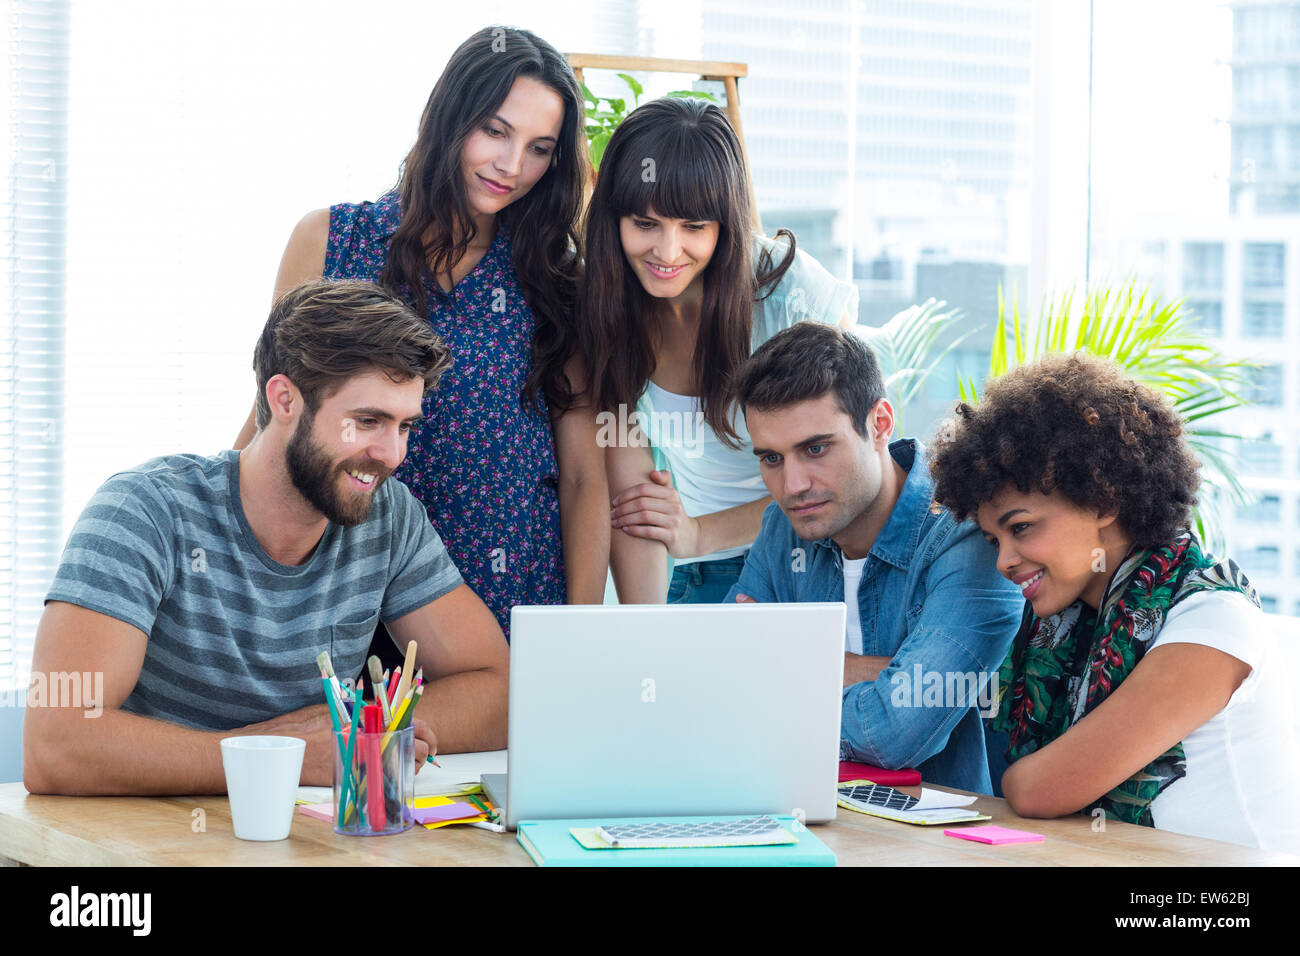 Happy creative business team gathered around a laptop - Stock Image